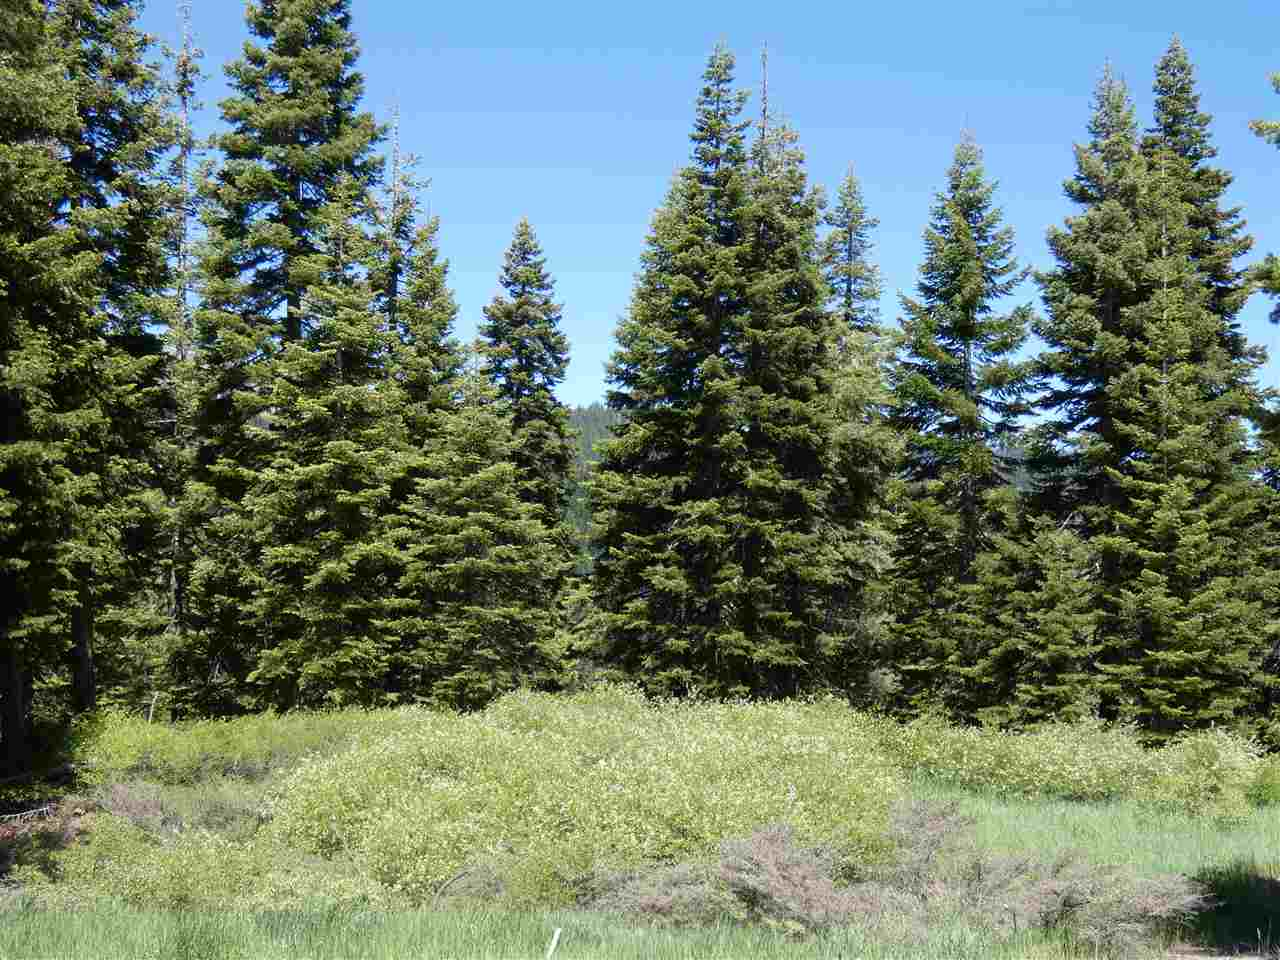 Image for 391 Sierra Crest Trail, Olympic Valley, CA 96146